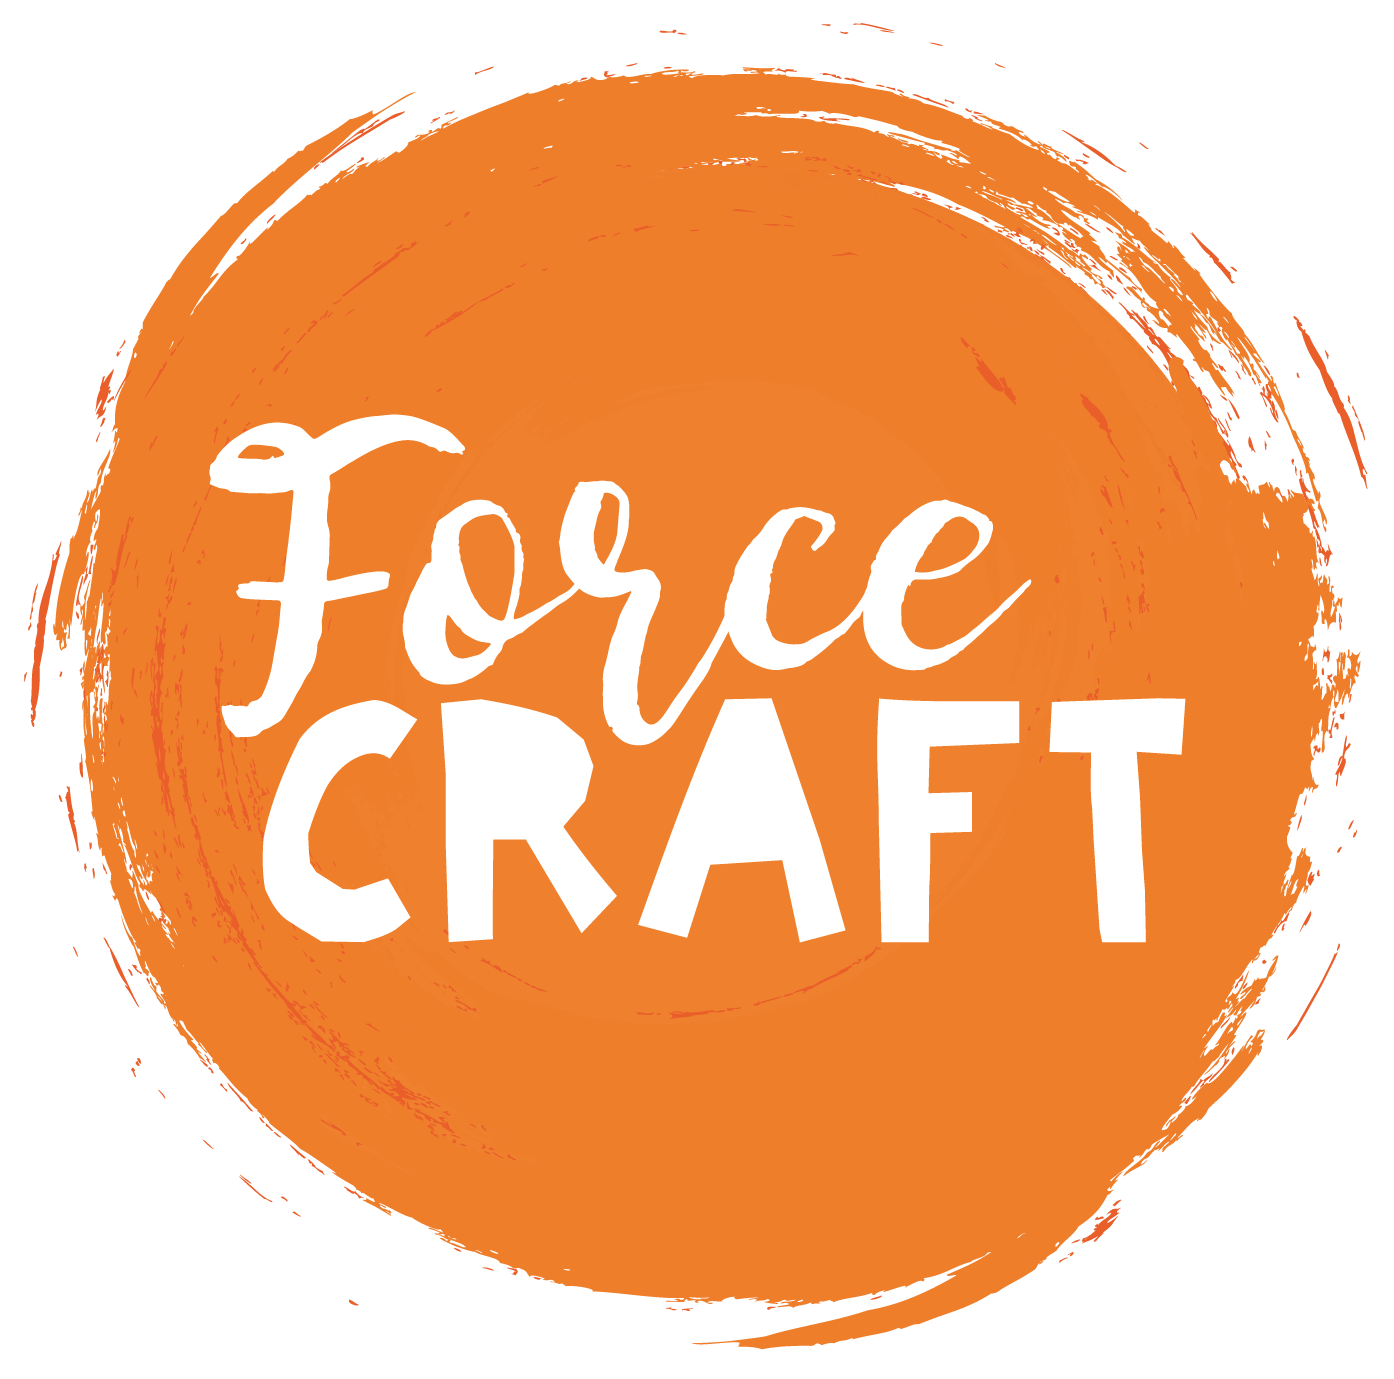 MARCHE Logo force craft artigiani partner tourists for future